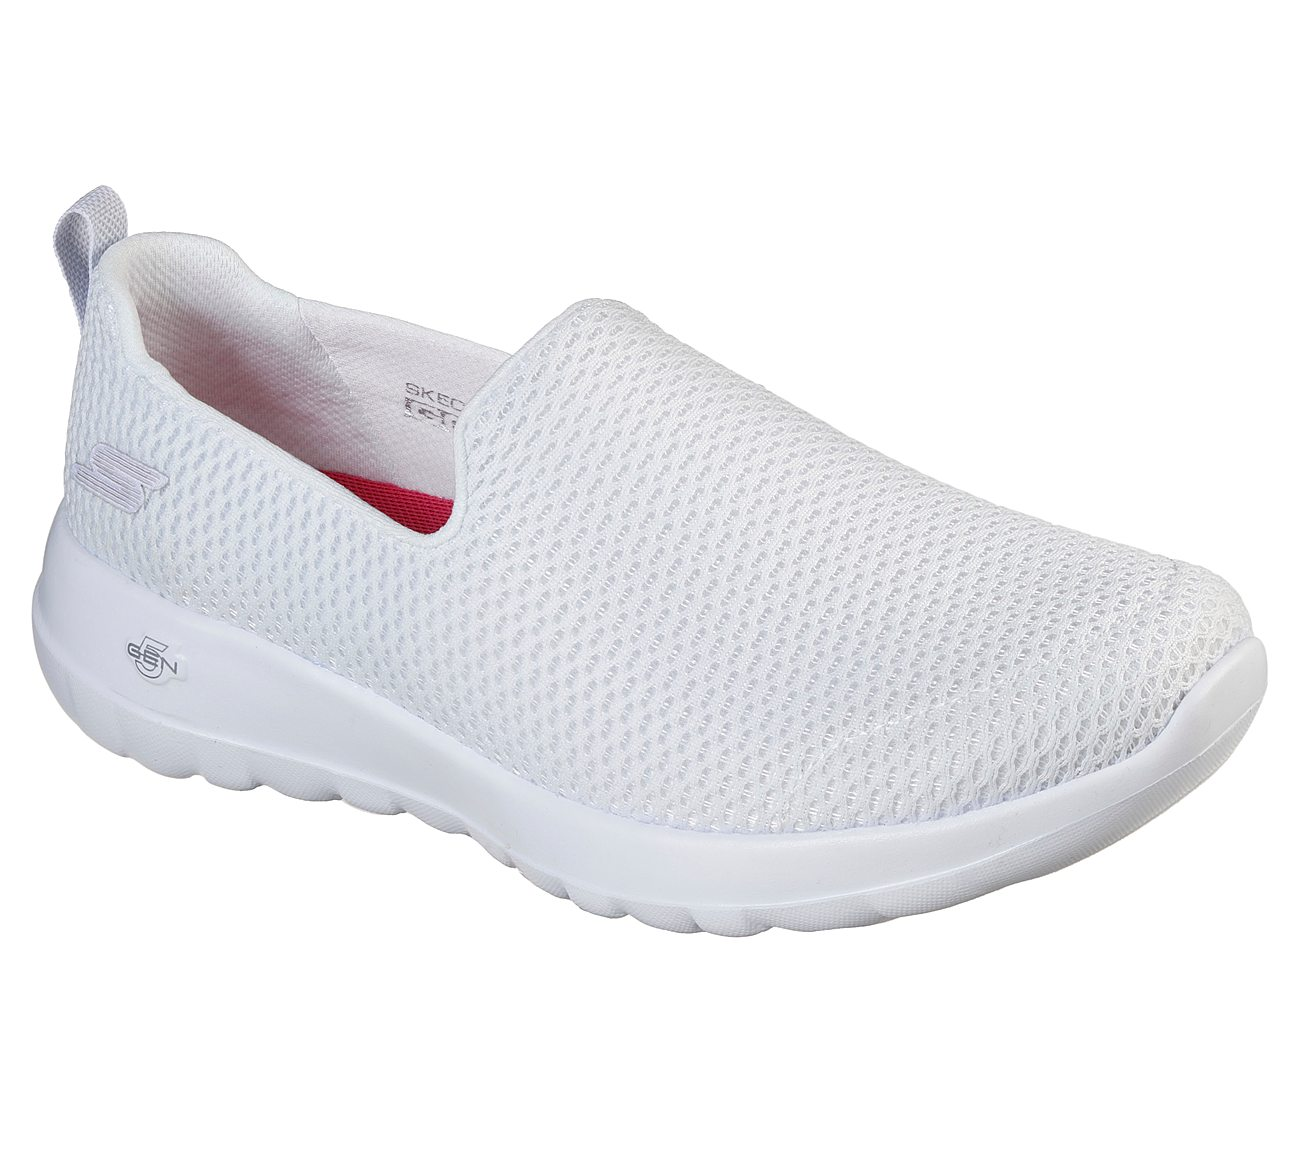 a40644380e0d Buy SKECHERS Skechers GOwalk Joy Skechers Performance Shoes only £55.00